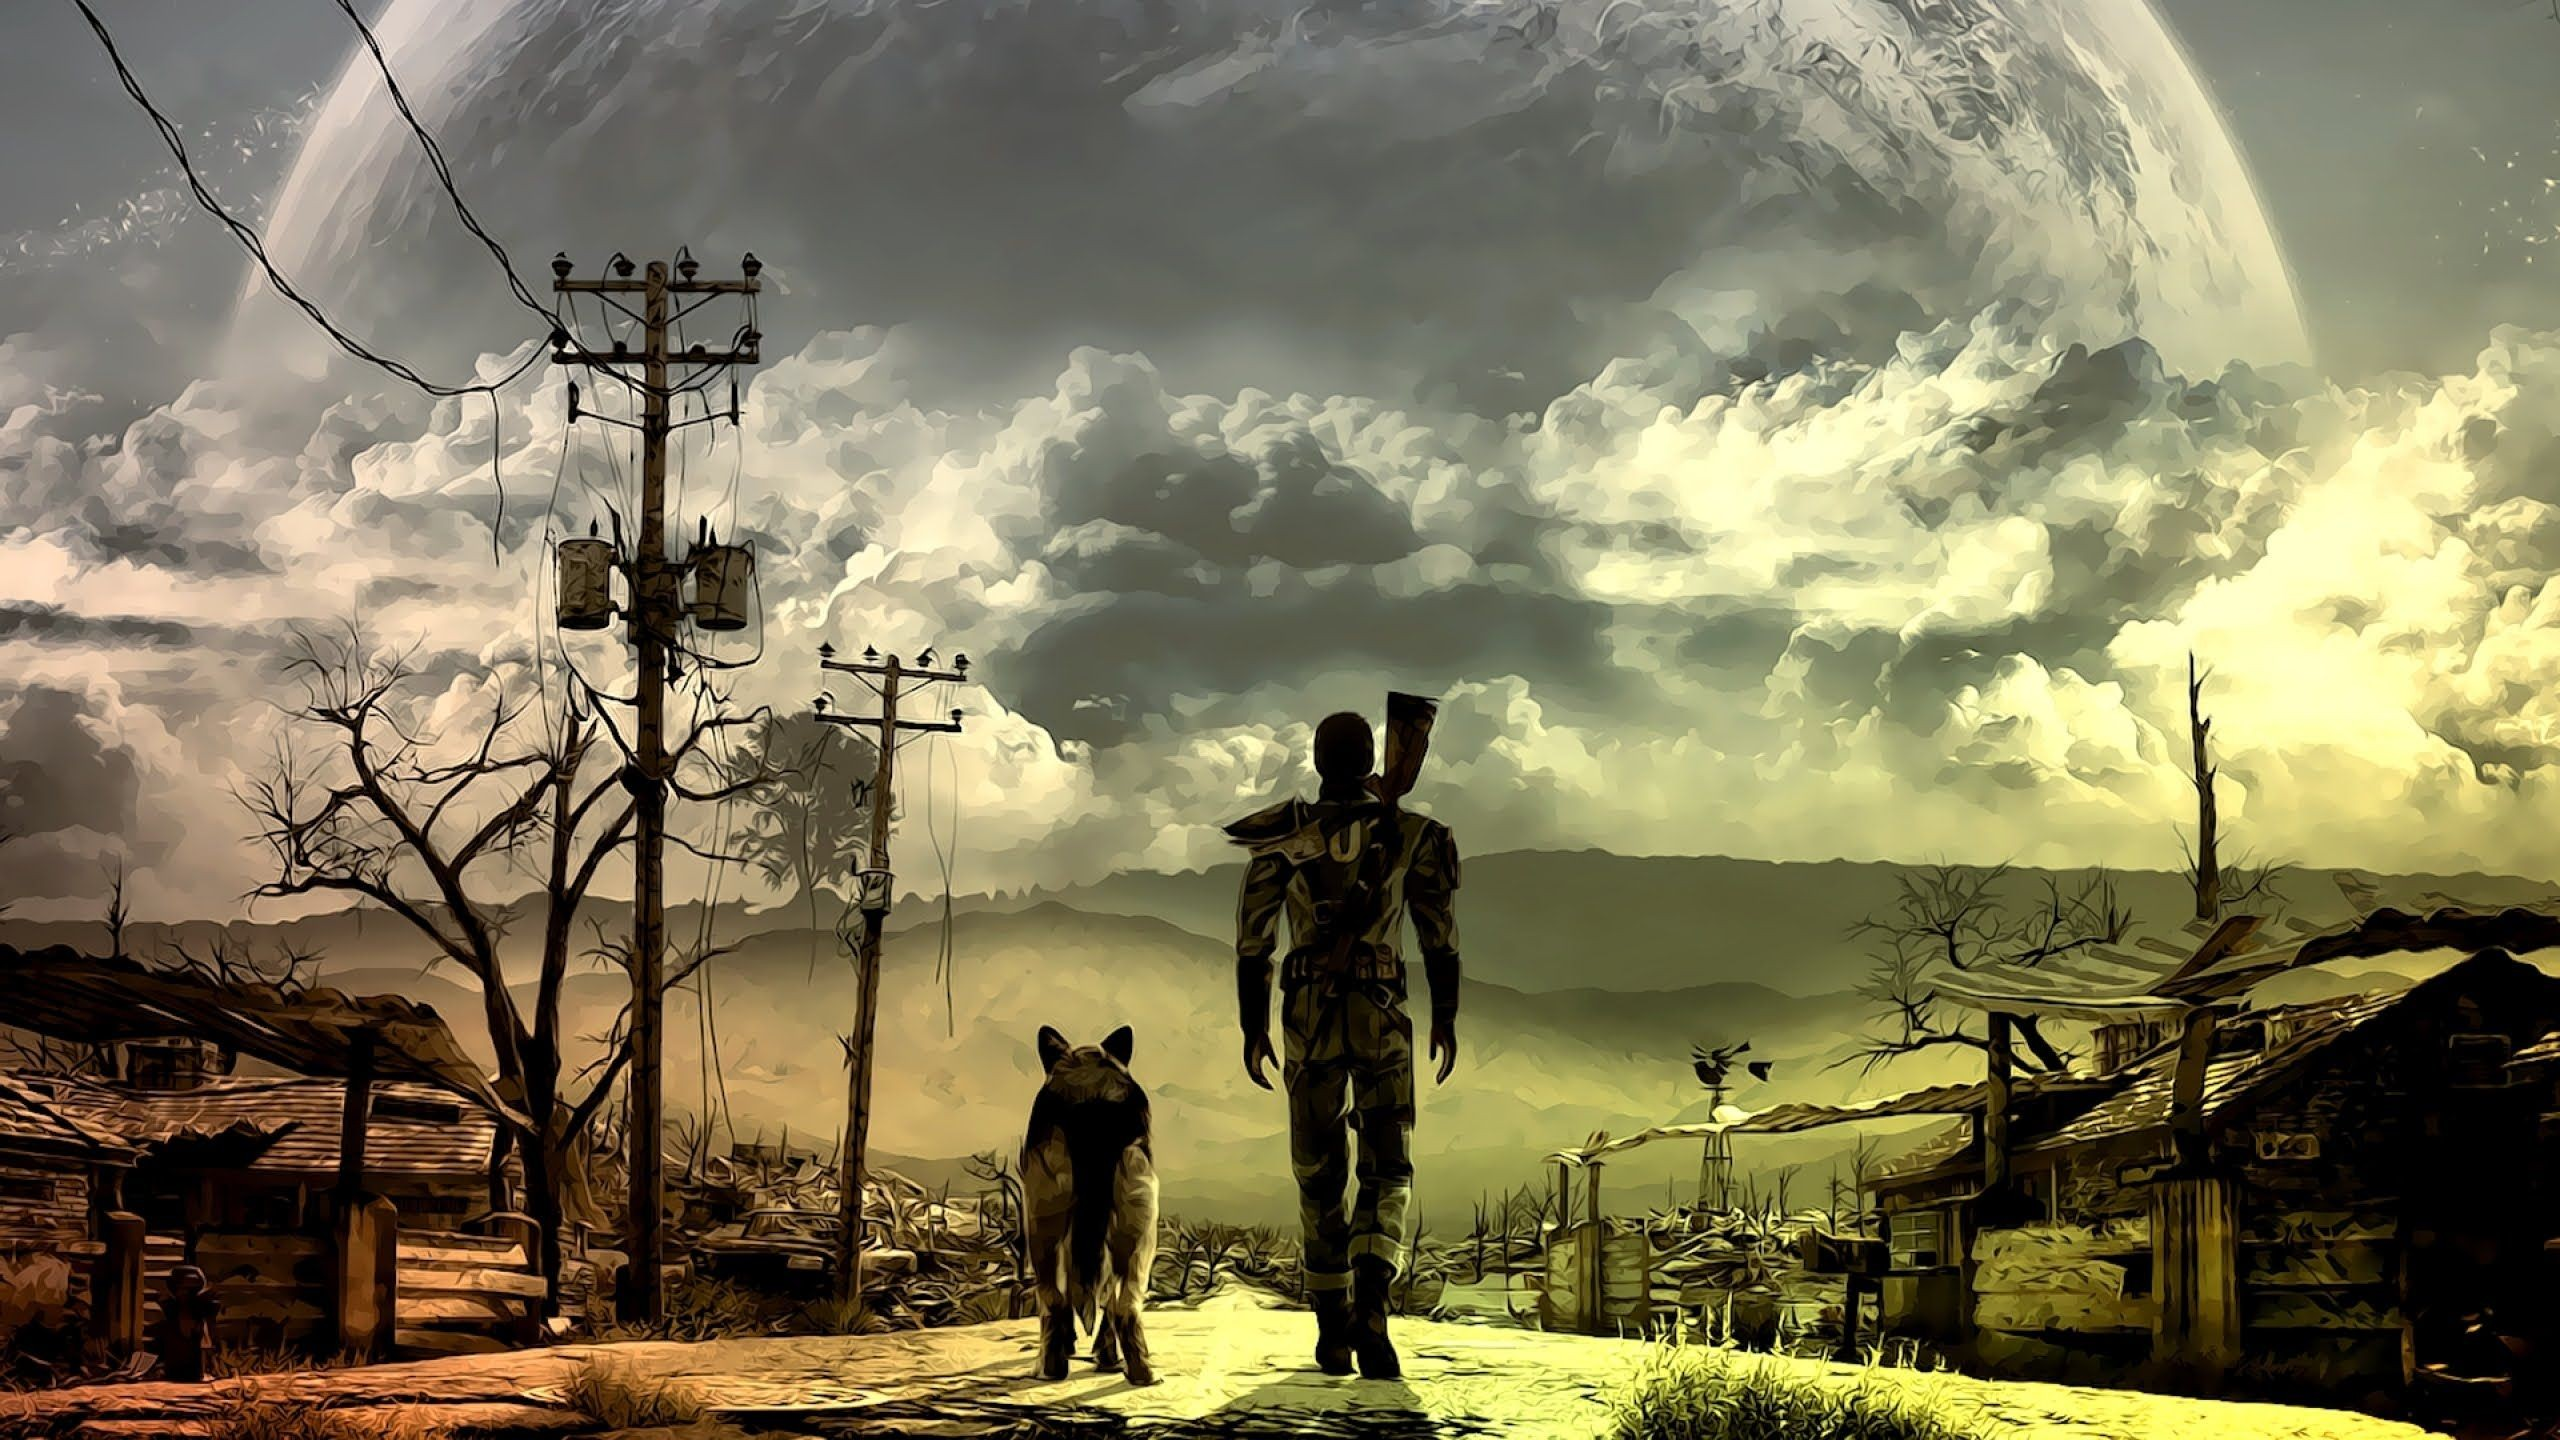 2560x1440 Fallout 4 Wallpapers HD Download On